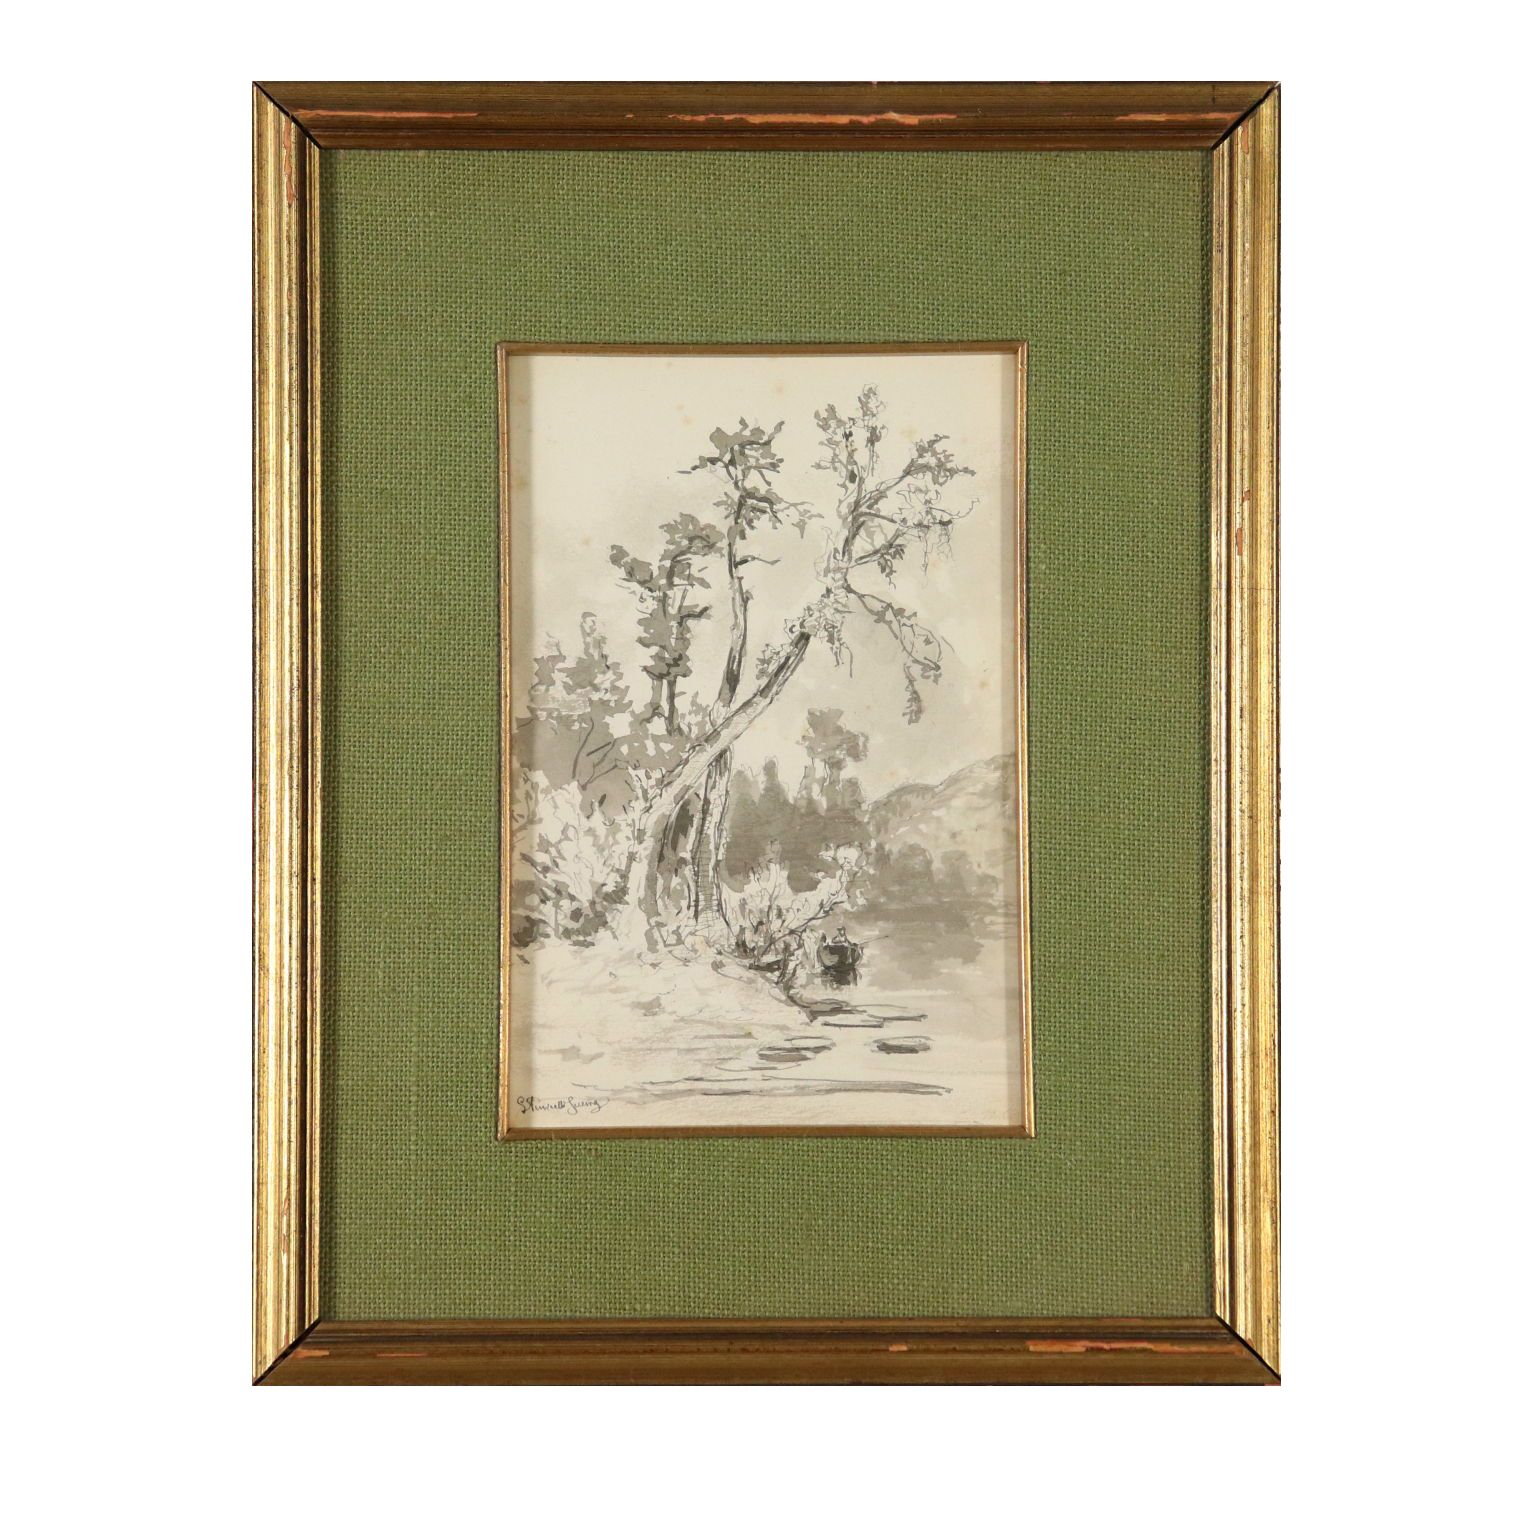 Photo of Watercolor by Giuseppe Puricelli Guerra Landscape with River 1800s